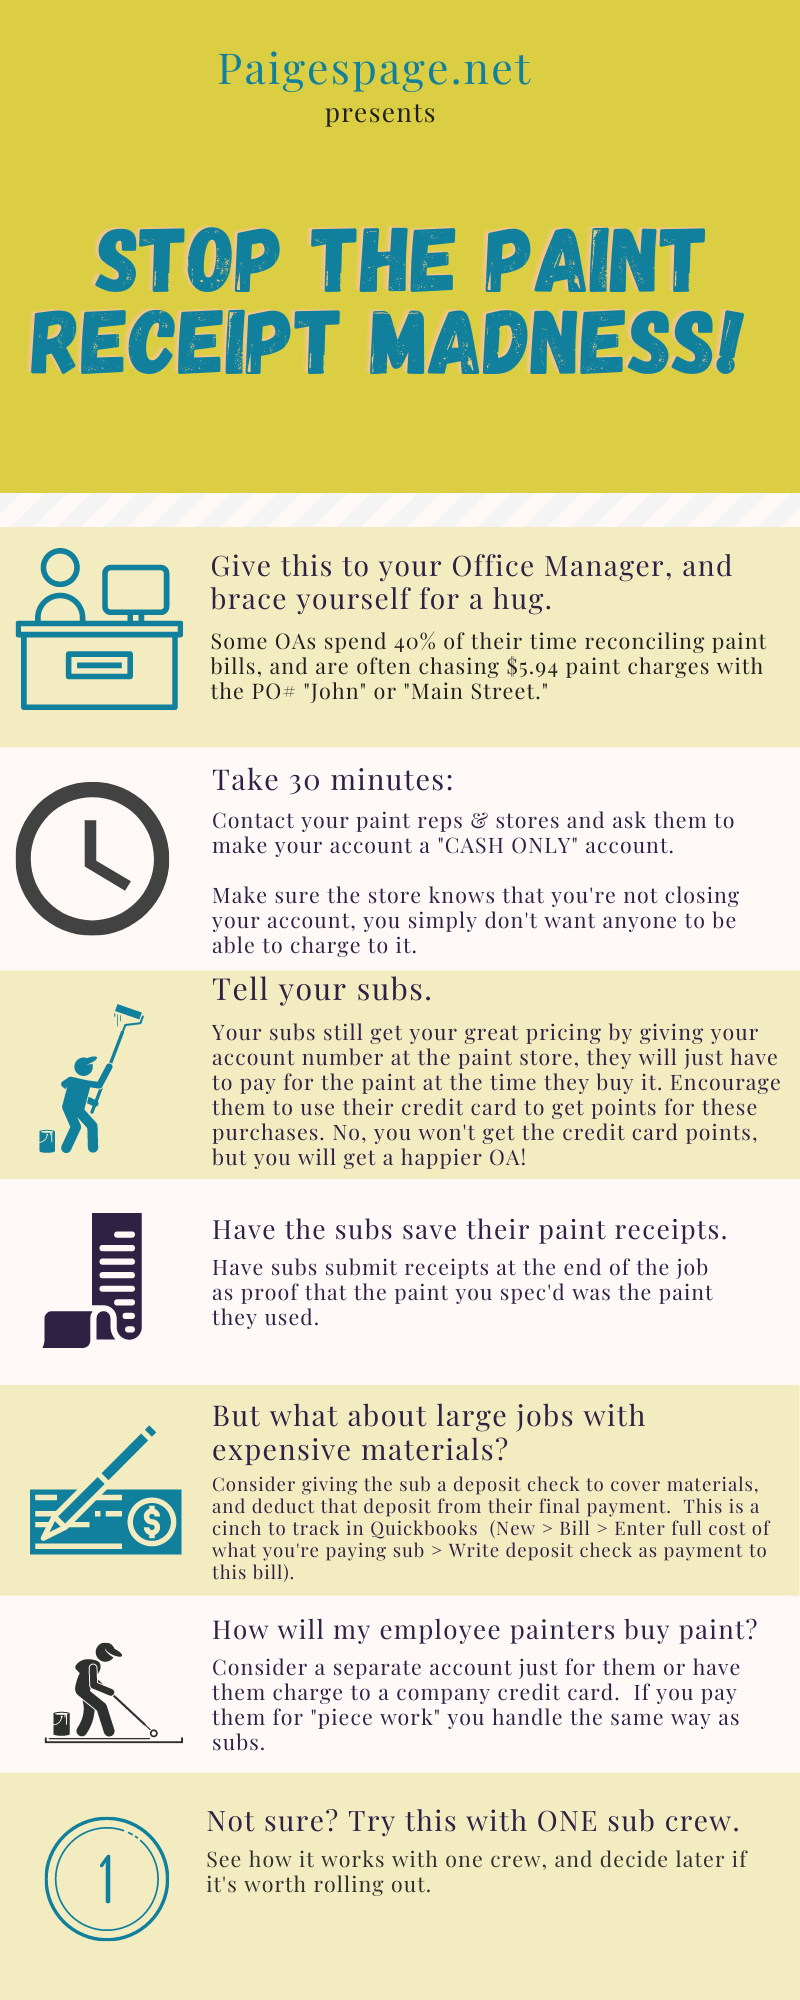 Stop the paint receipt madness infographic